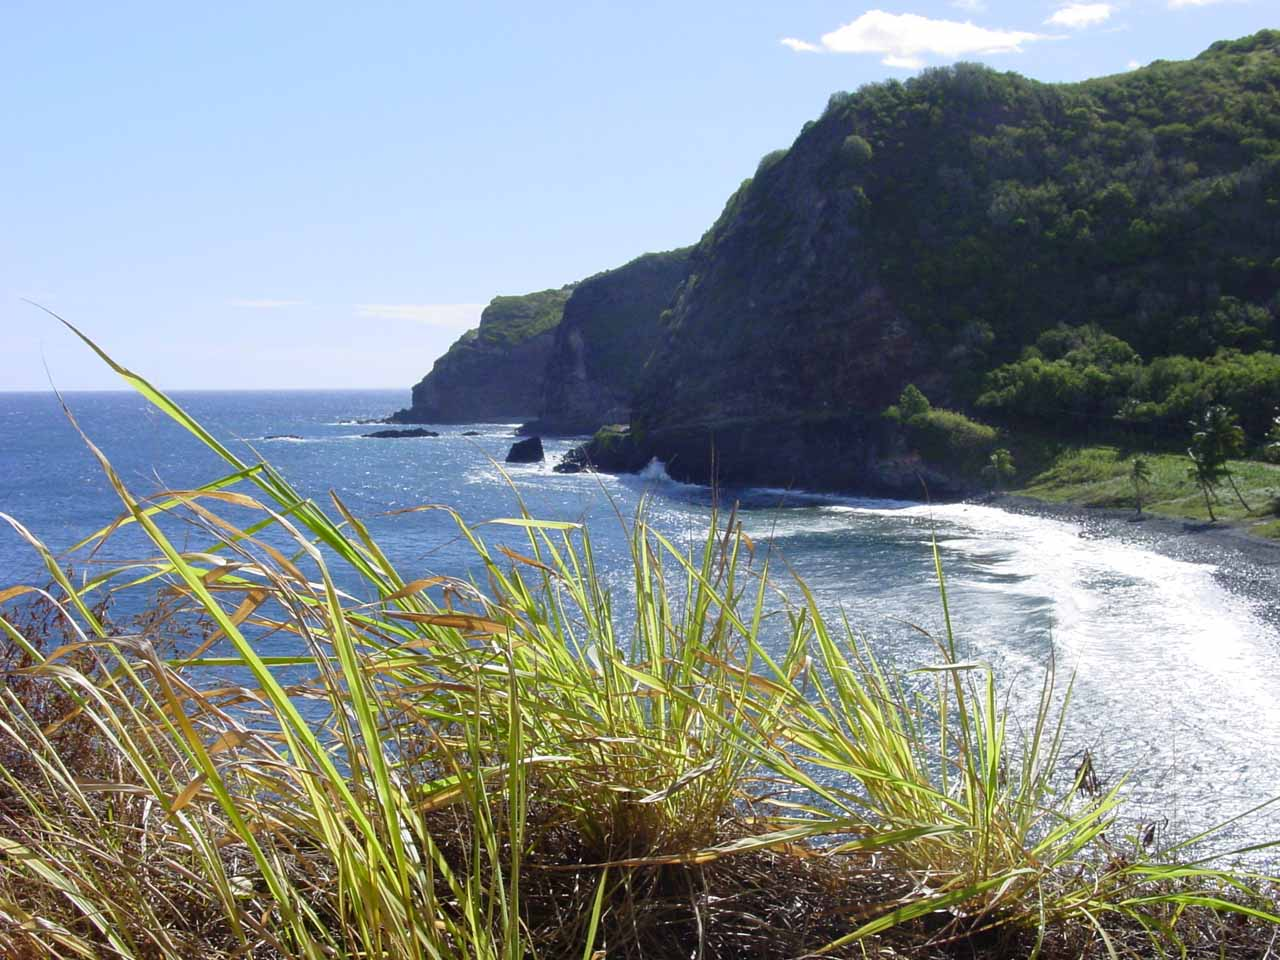 Checking out the coastline along the Pi'ilani Highway as we were getting closer to the Alelele Stream Bridge